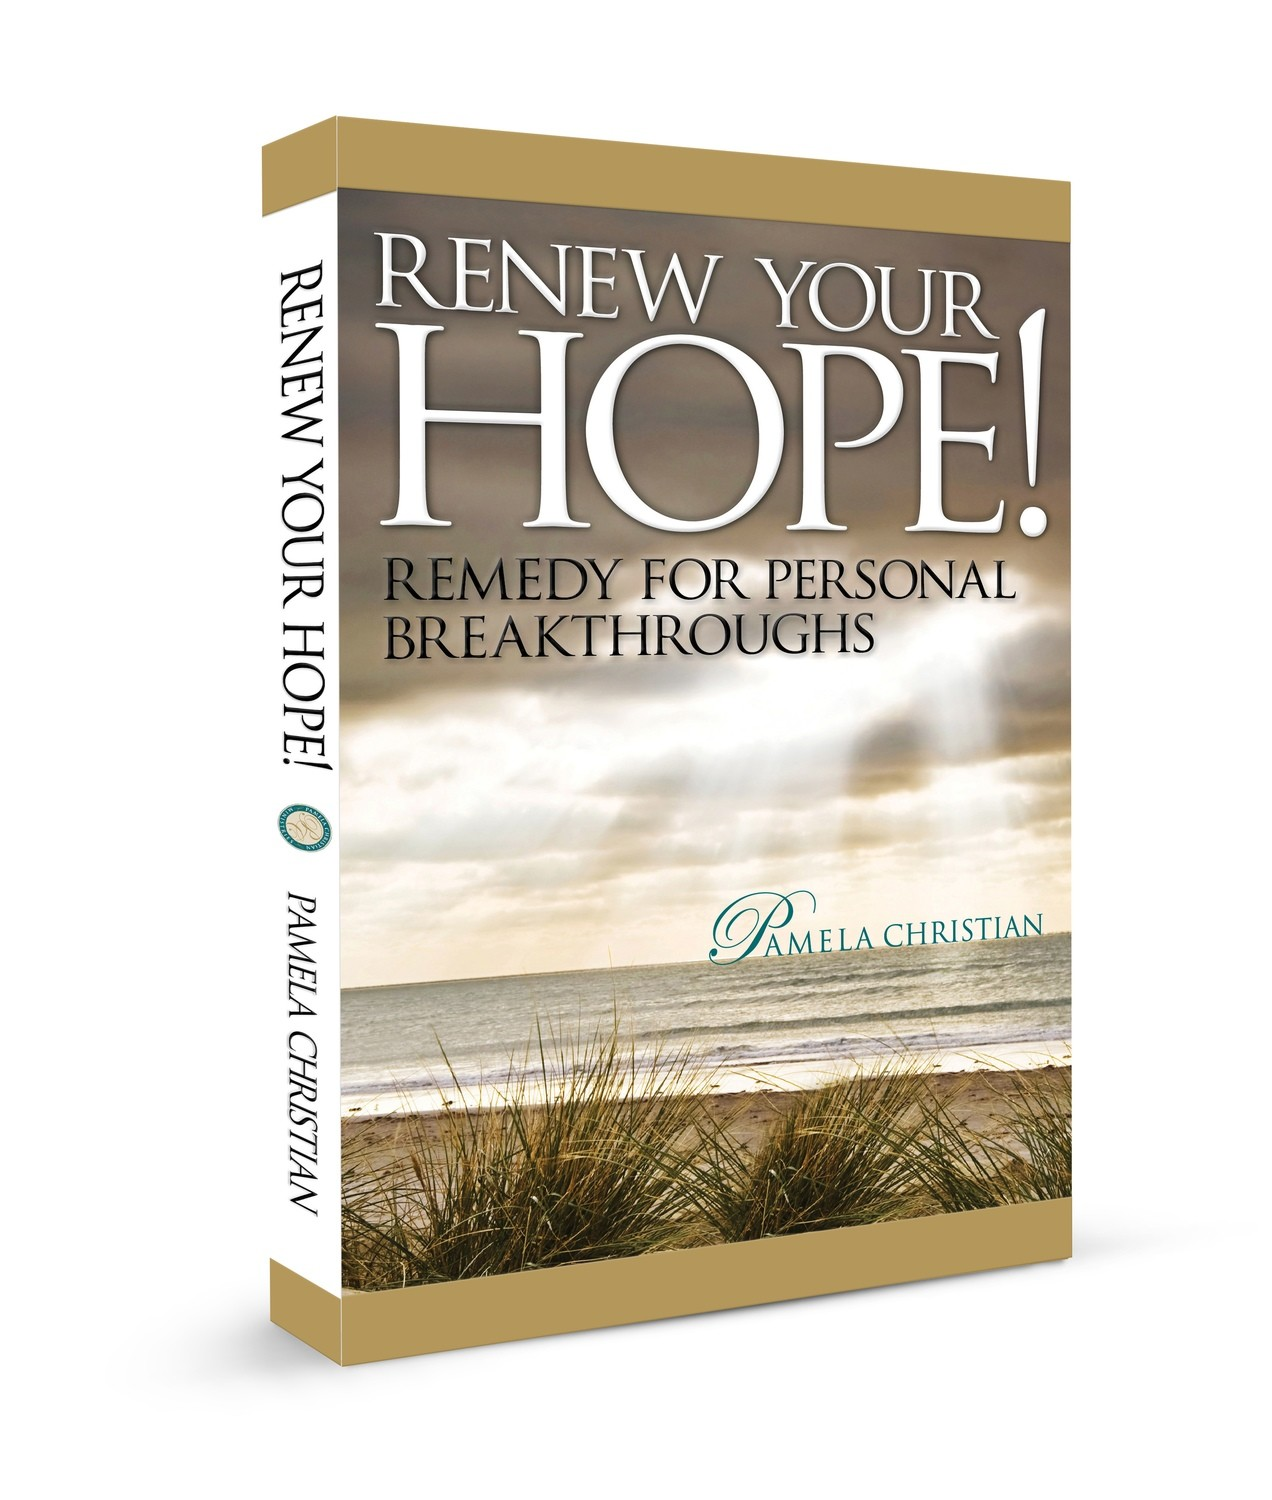 Renew Your Hope! Remedy for Personal Breakthroughs - PRINT